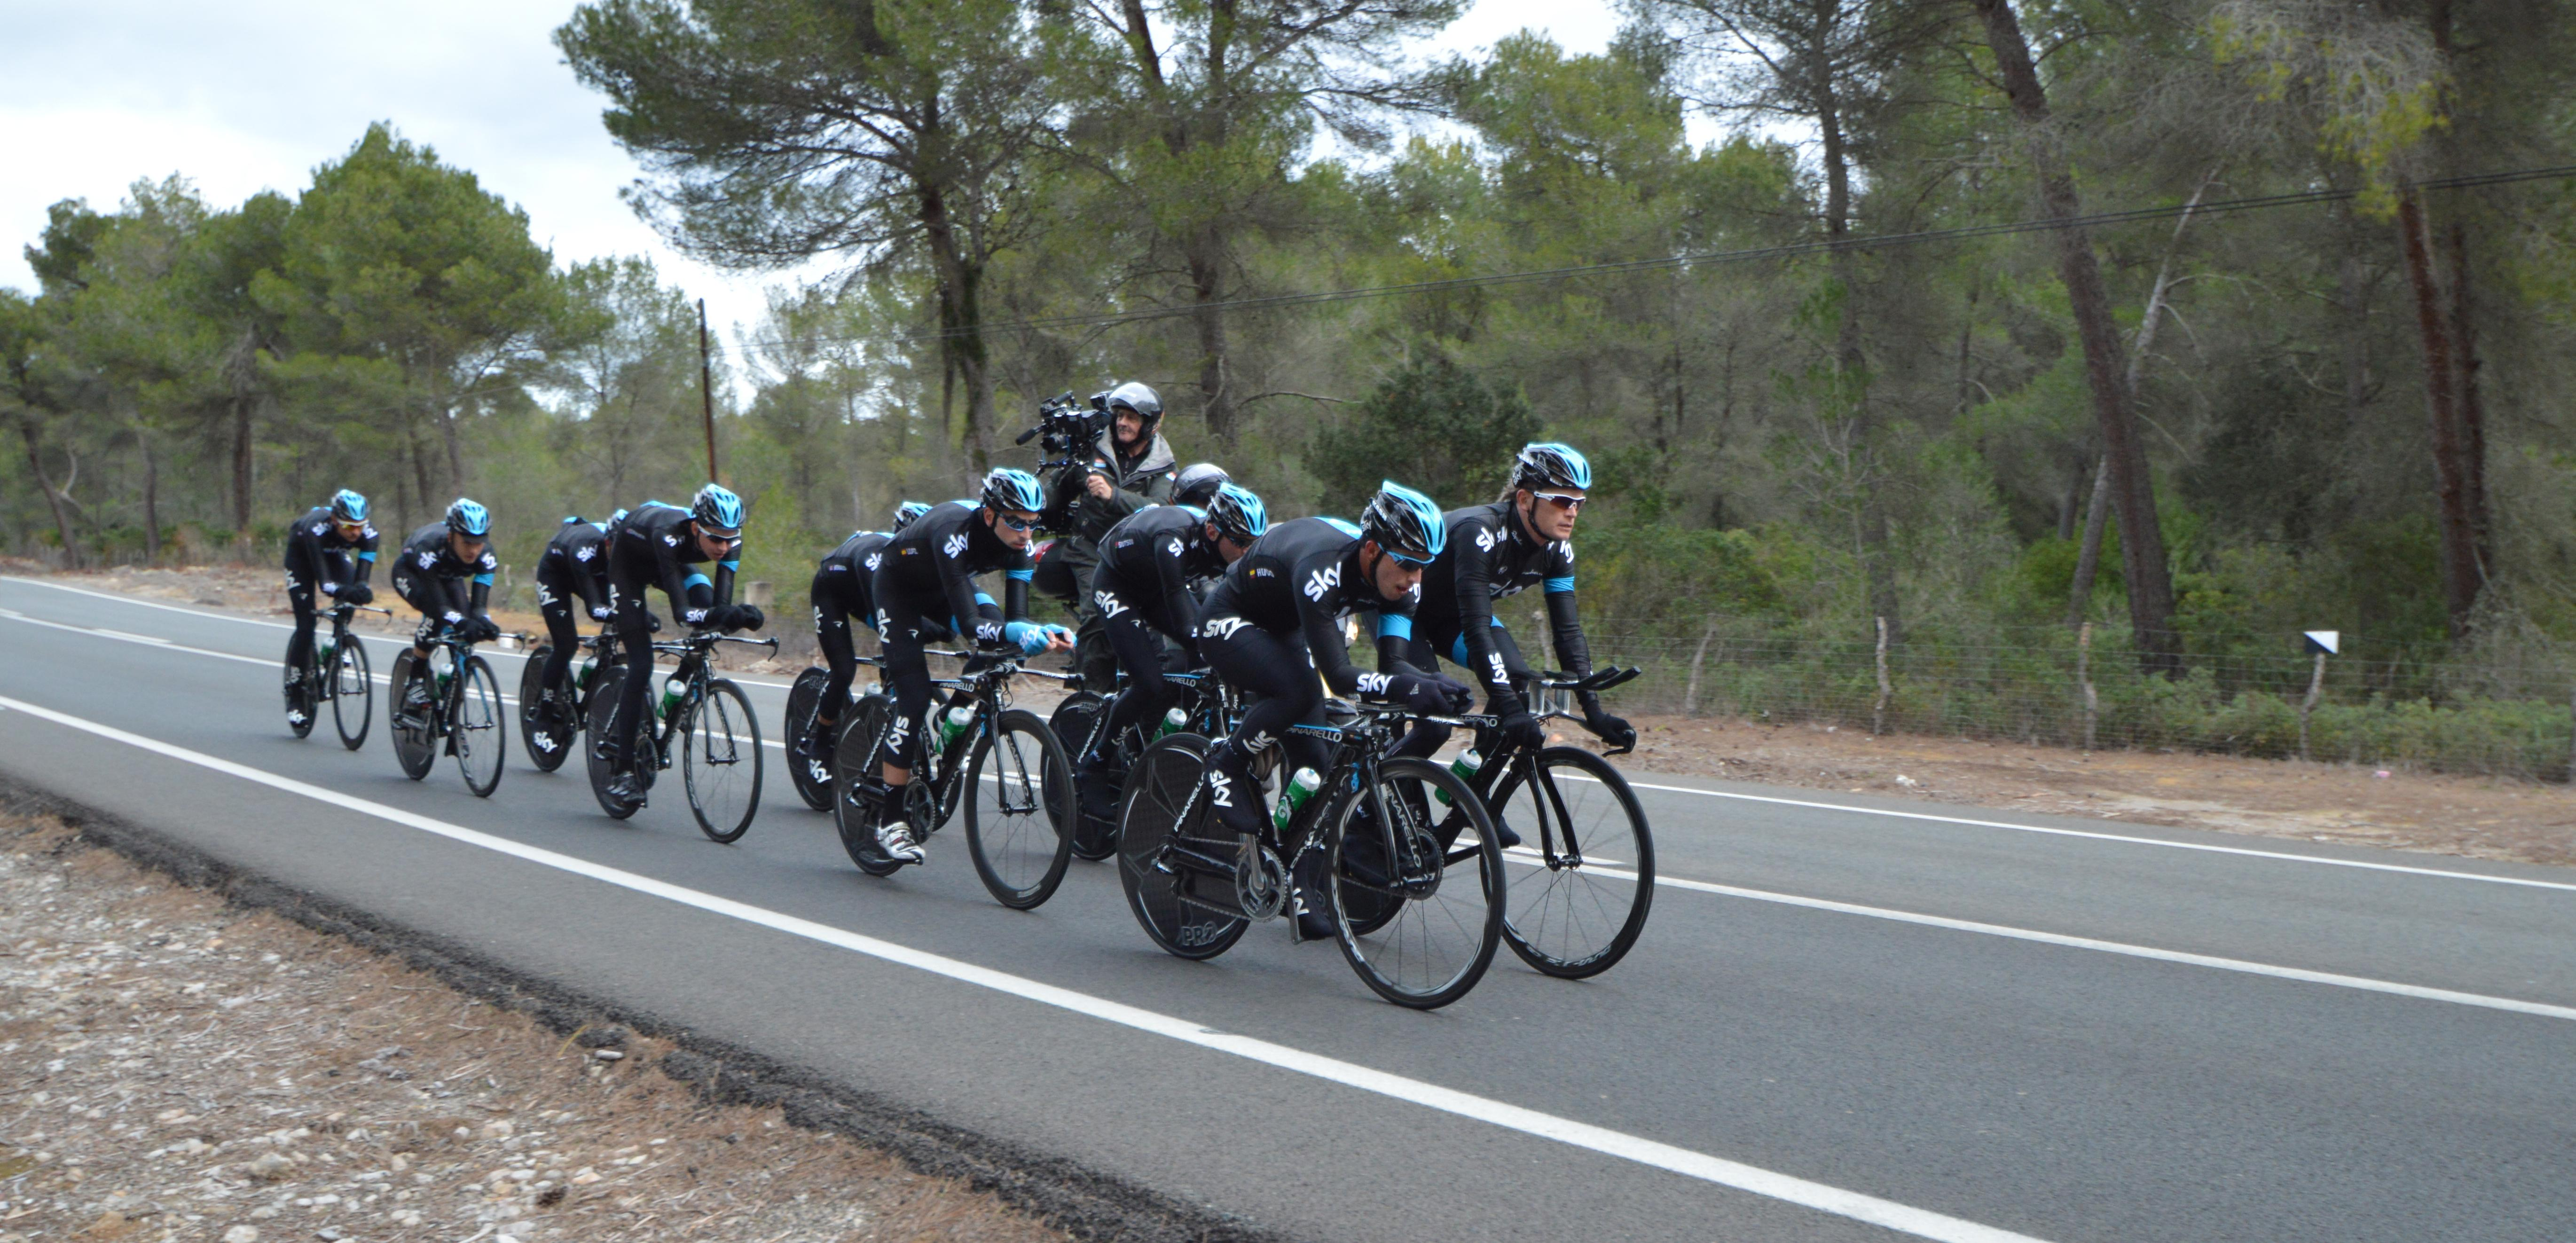 Team SKy Group TT Ride 5